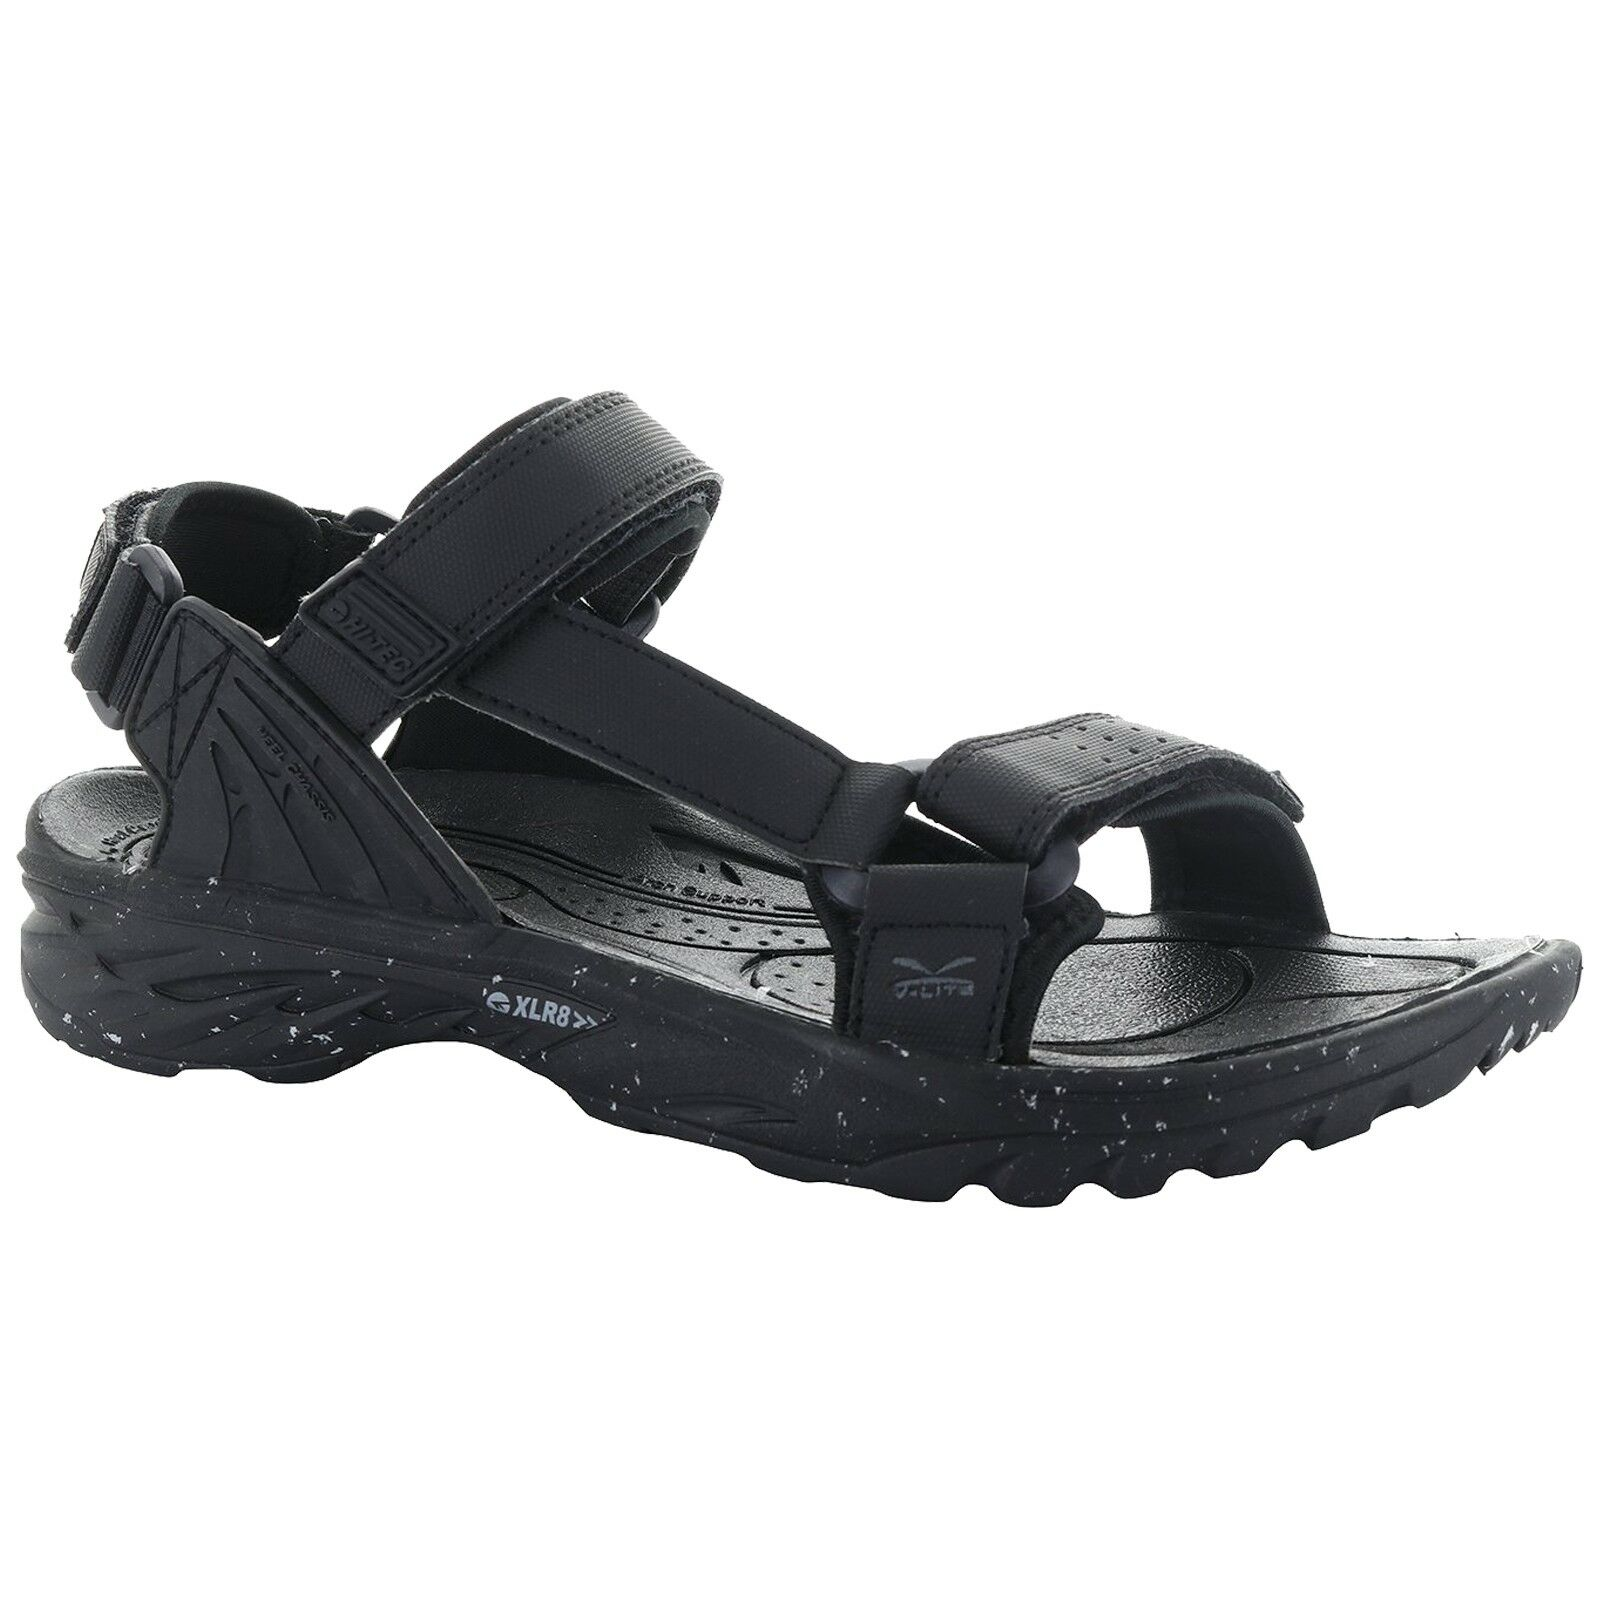 Herren HI-TEC WILD-LIFE VYPER BLACK LIGHTWEIGHT ADJUSTABLE WALKING STRAP WALKING ADJUSTABLE SANDALS f9a60c